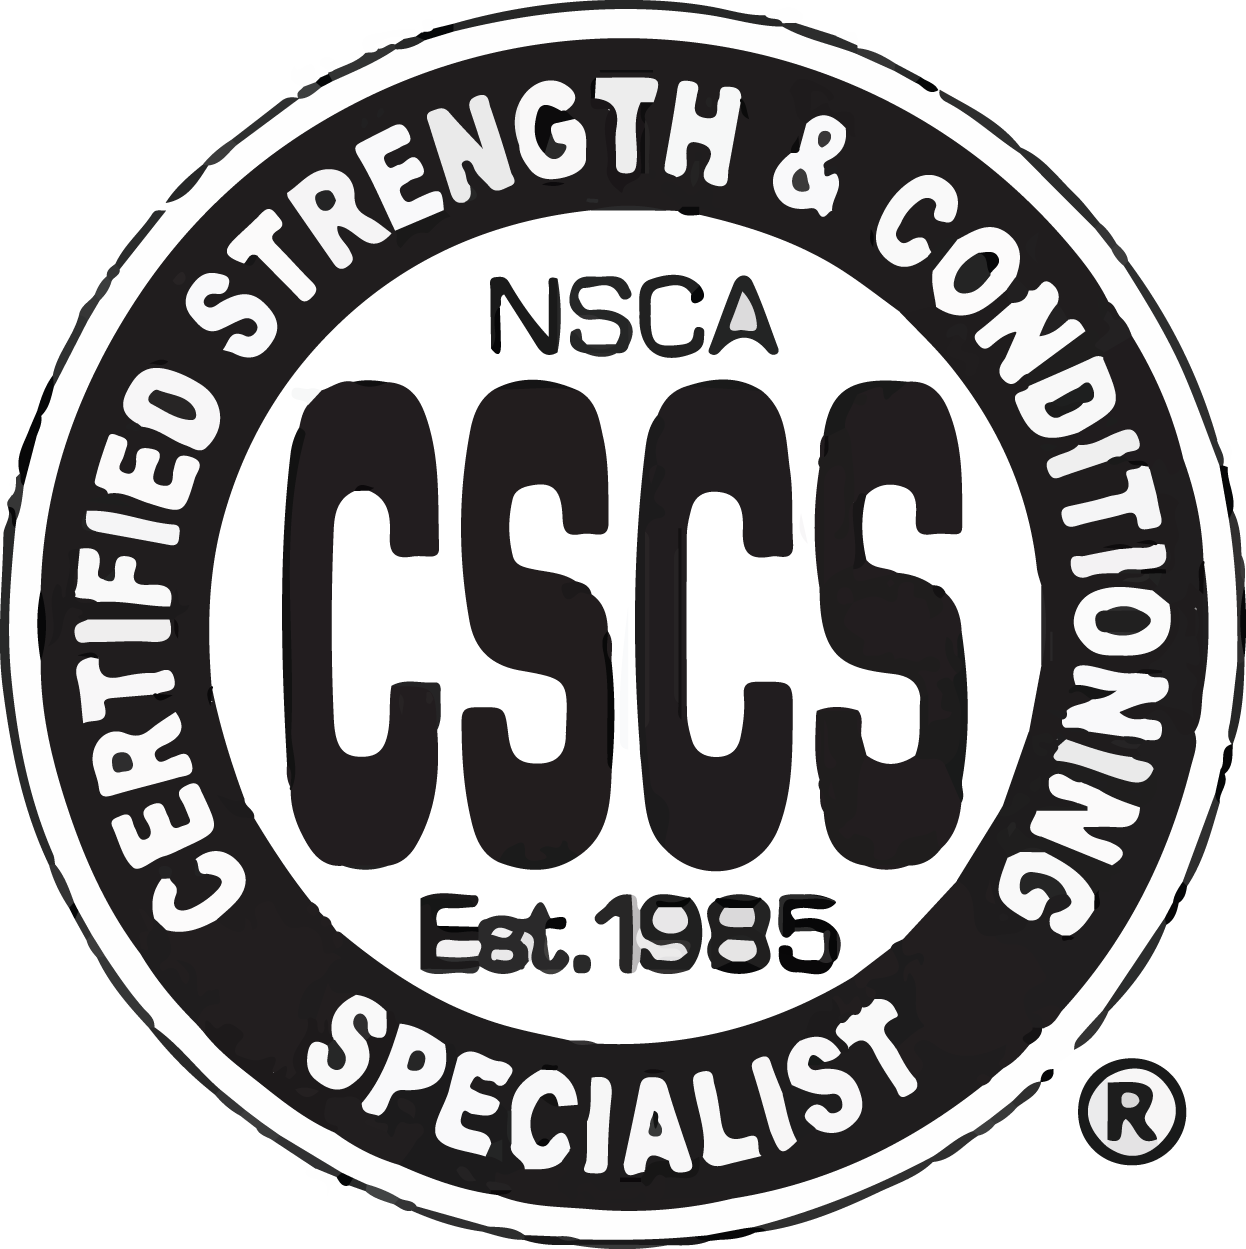 Dr. Kuang is a Certified Strength and Conditioning Specialist through the National Strength and Conditioning Association.